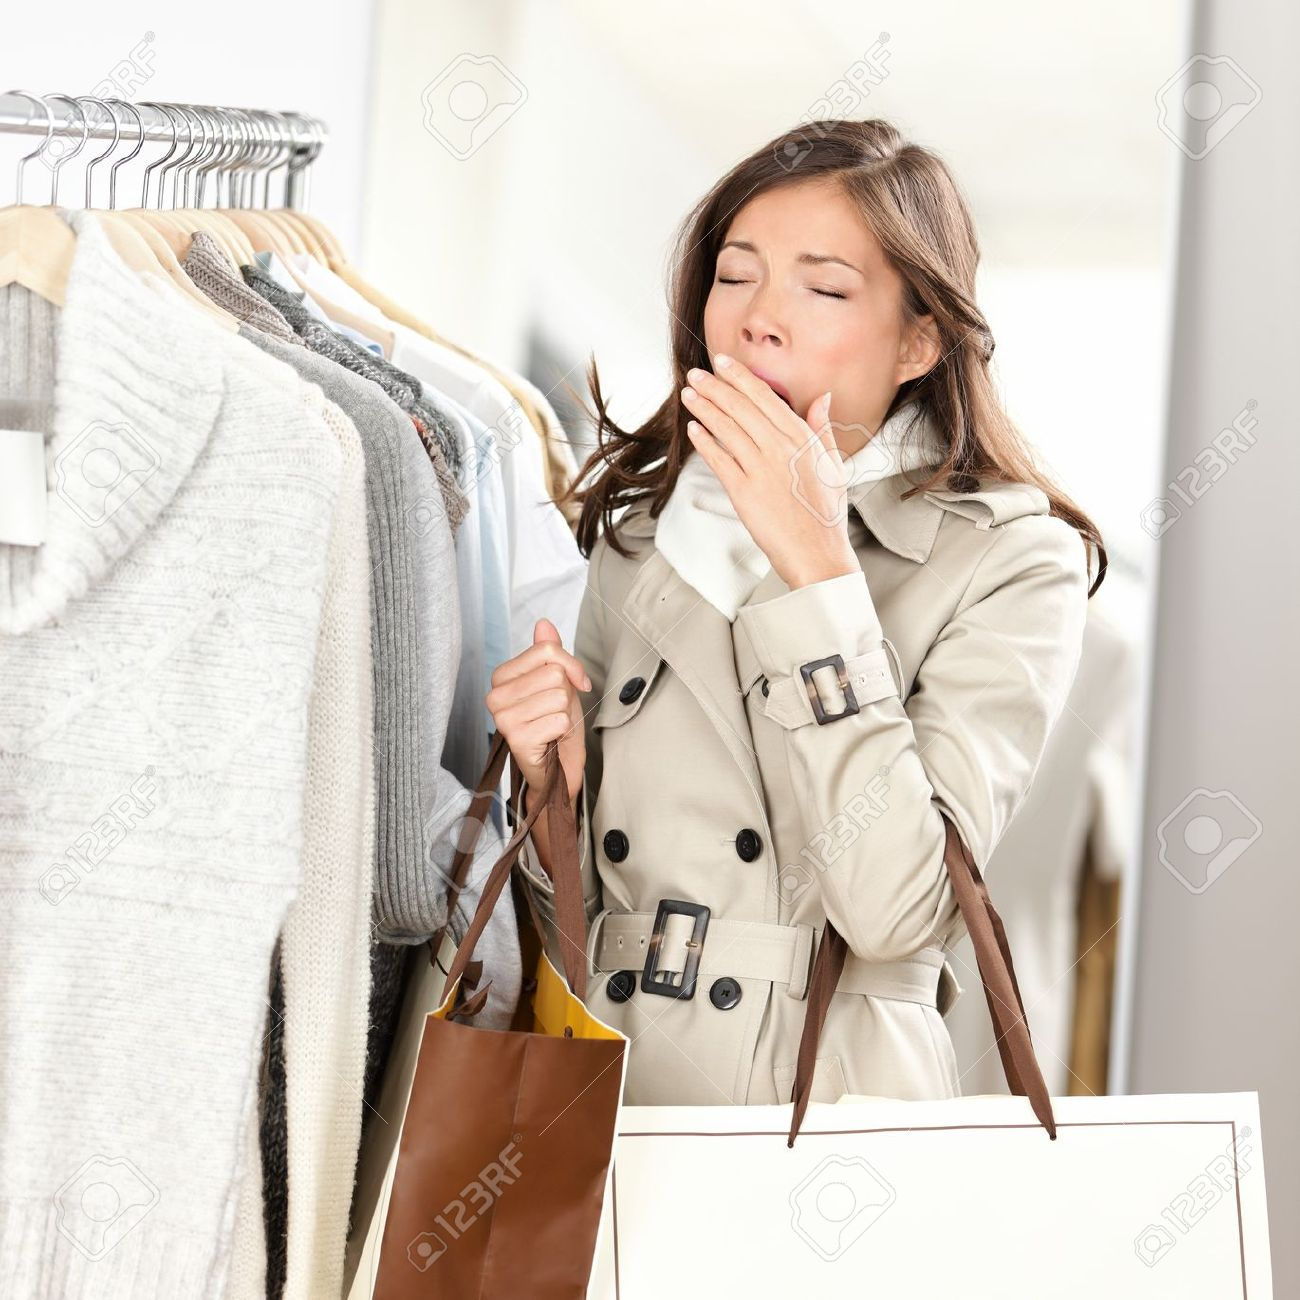 Tired woman yawning while shopping clothes in clothing store shop  Beautiful young mixed race Asian   Caucasian female model Standard-Bild - 16637273